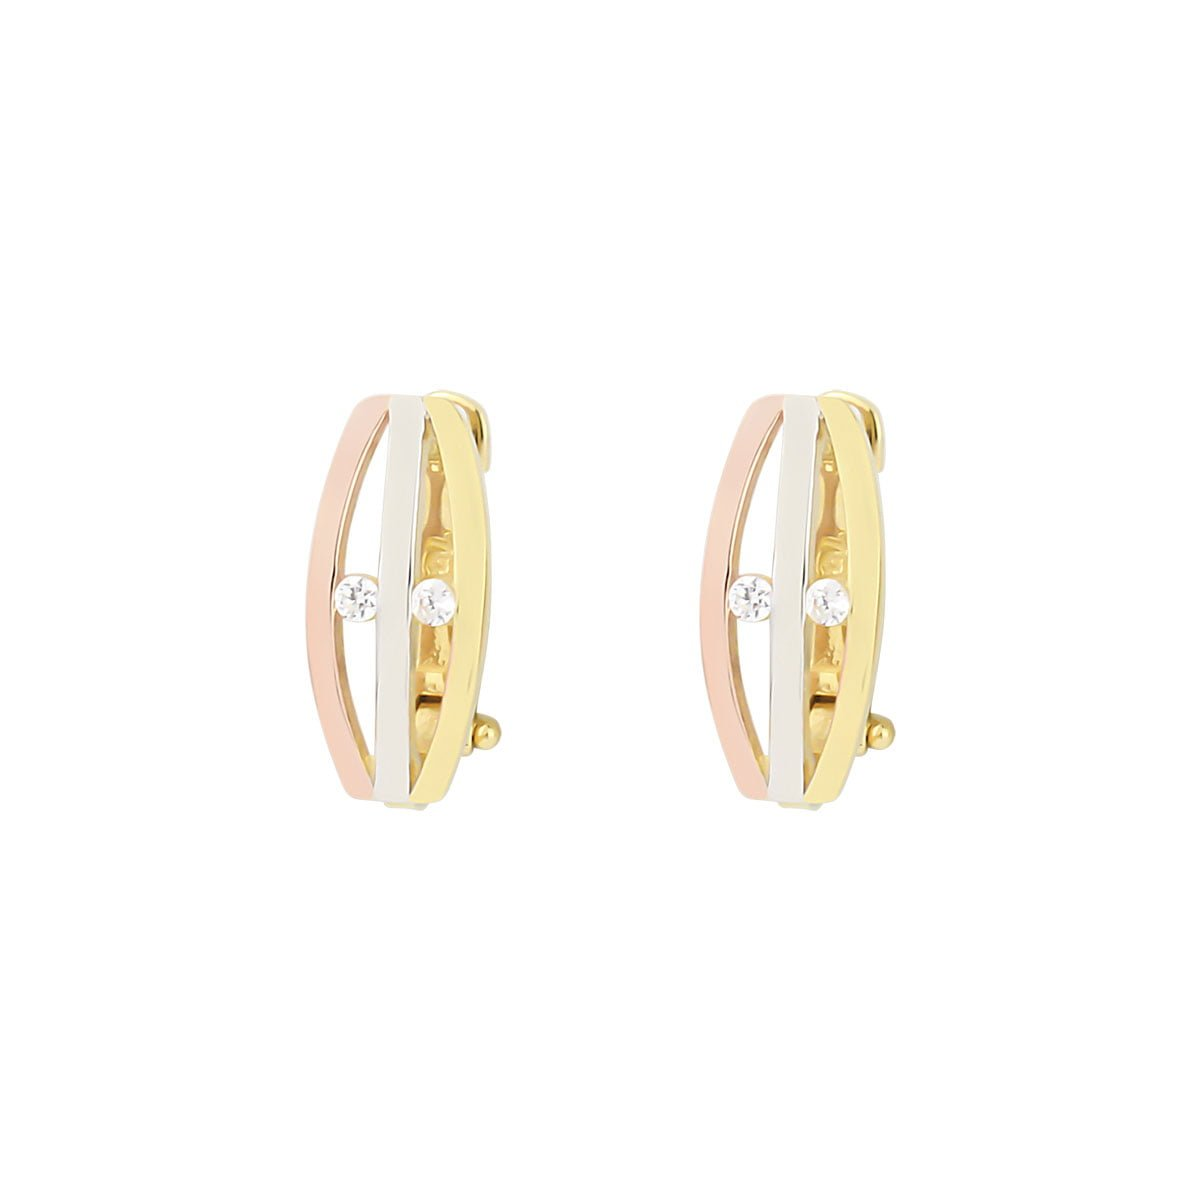 Cali Trio 18ct White, Rose & Gold Clip On Earrings